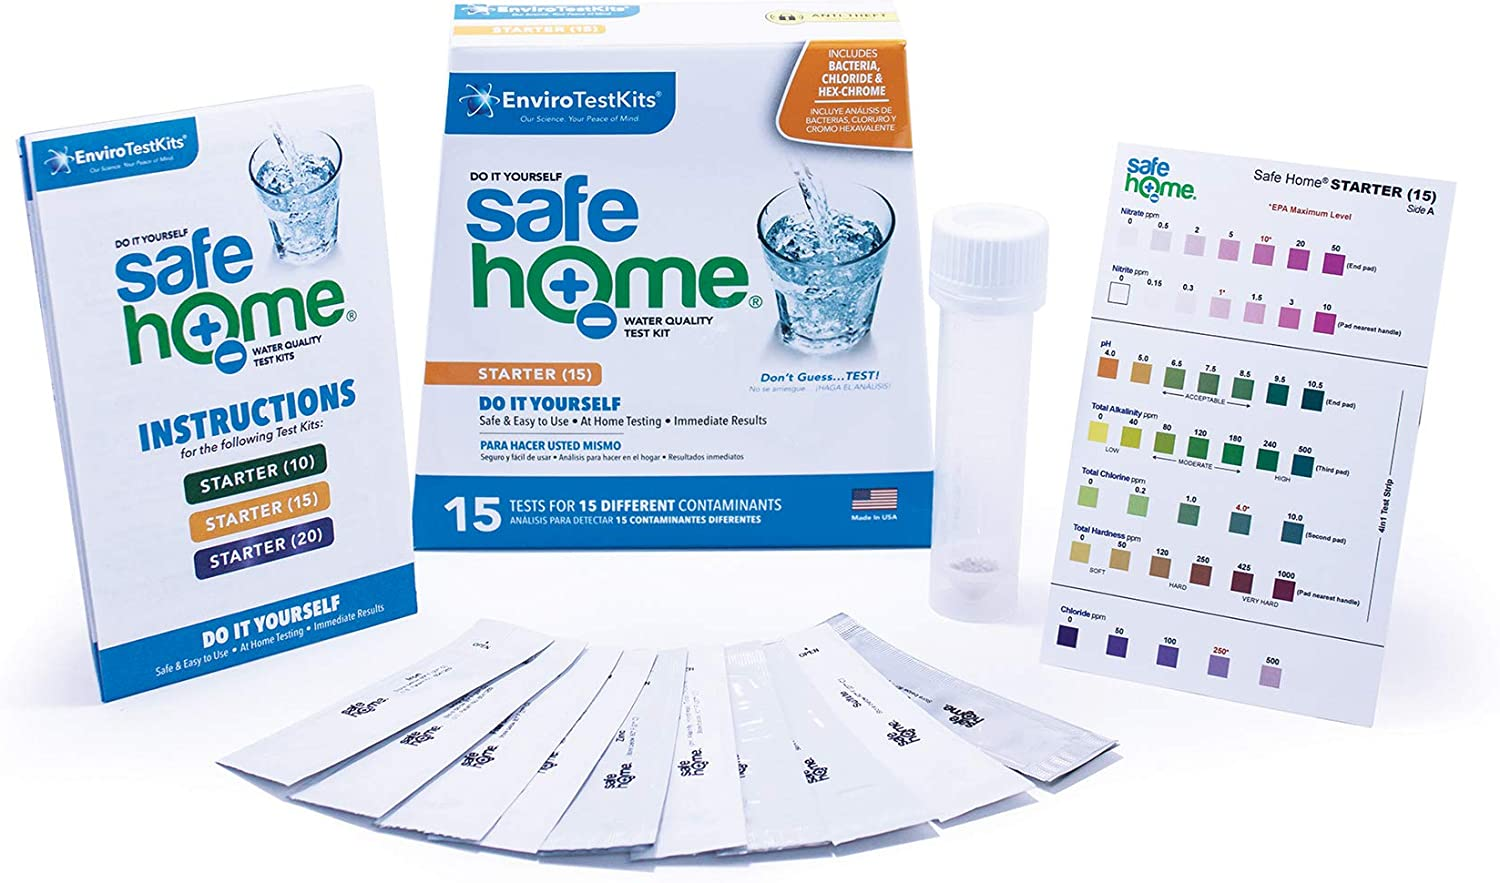 Safe Home STARTER-15 Water Quality Test Kit - (DIY Testing for 15 Different Contaminants: Bacteria, Nitrates, Hex-Chrome, TDS, Zinc, Chlorine, Copper, pH, Iron, Sulfate, Chloride & More)